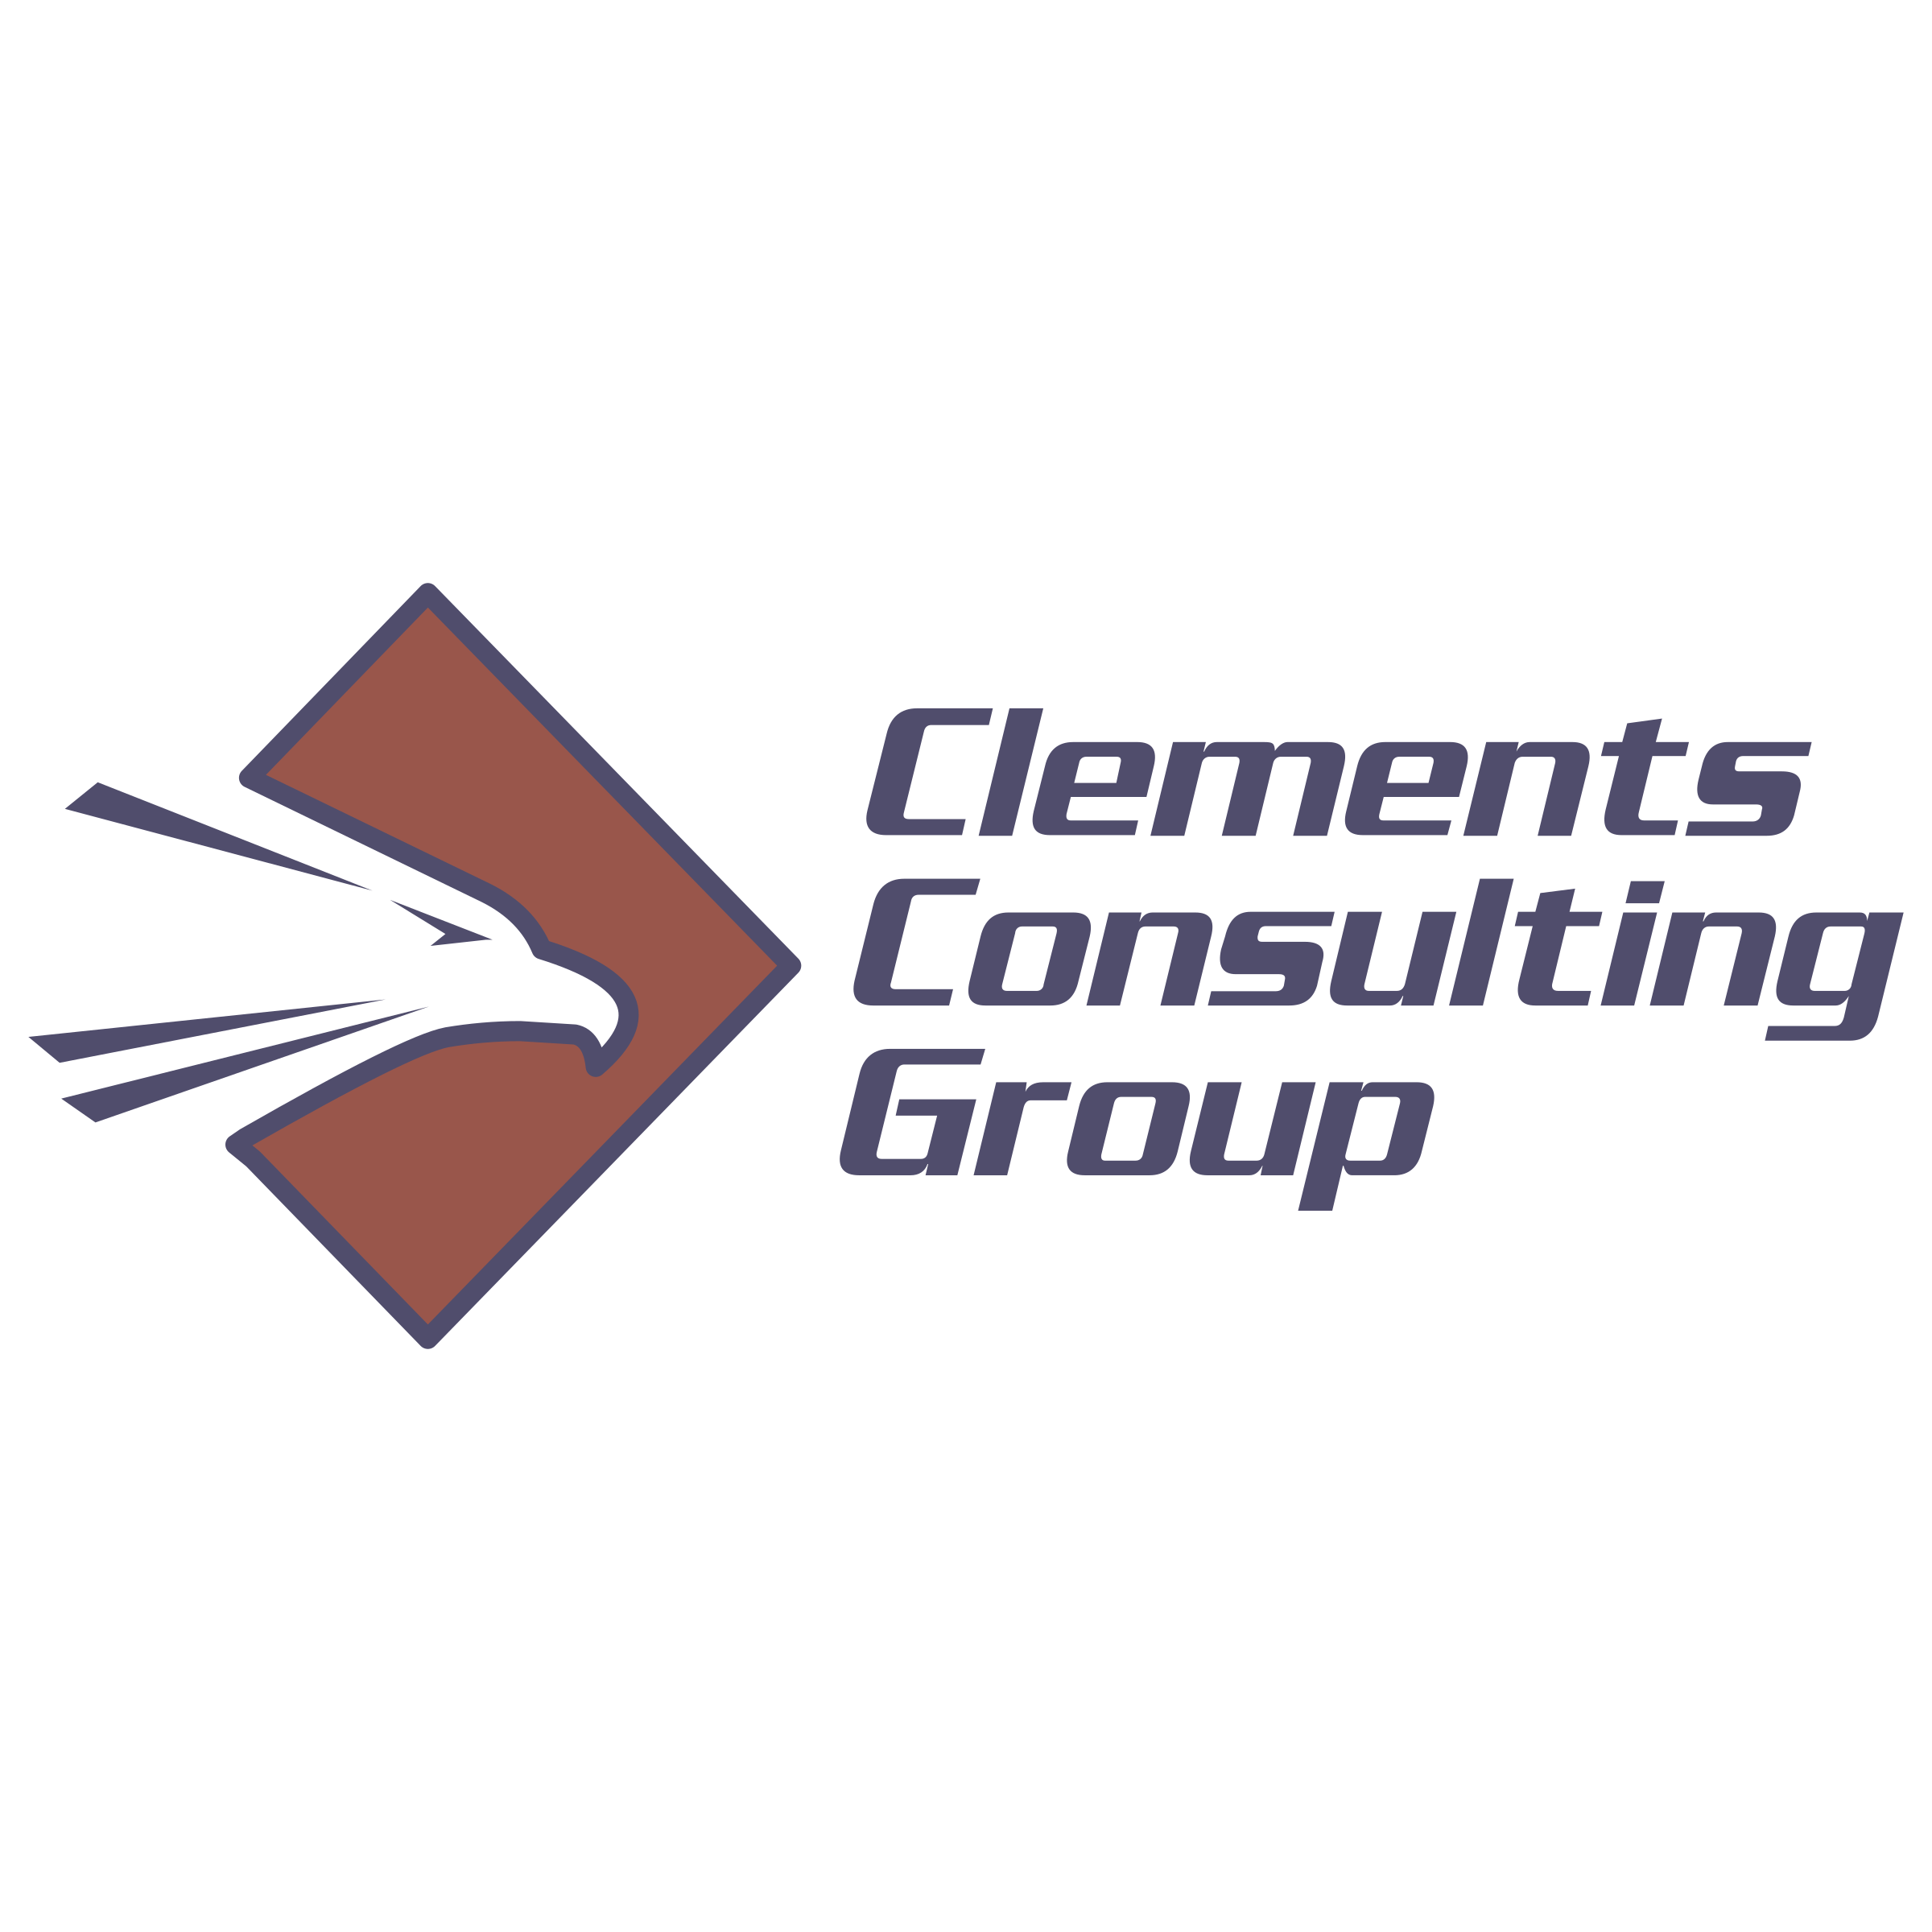 clip transparent stock Vector consulting group. Clements logo png transparent